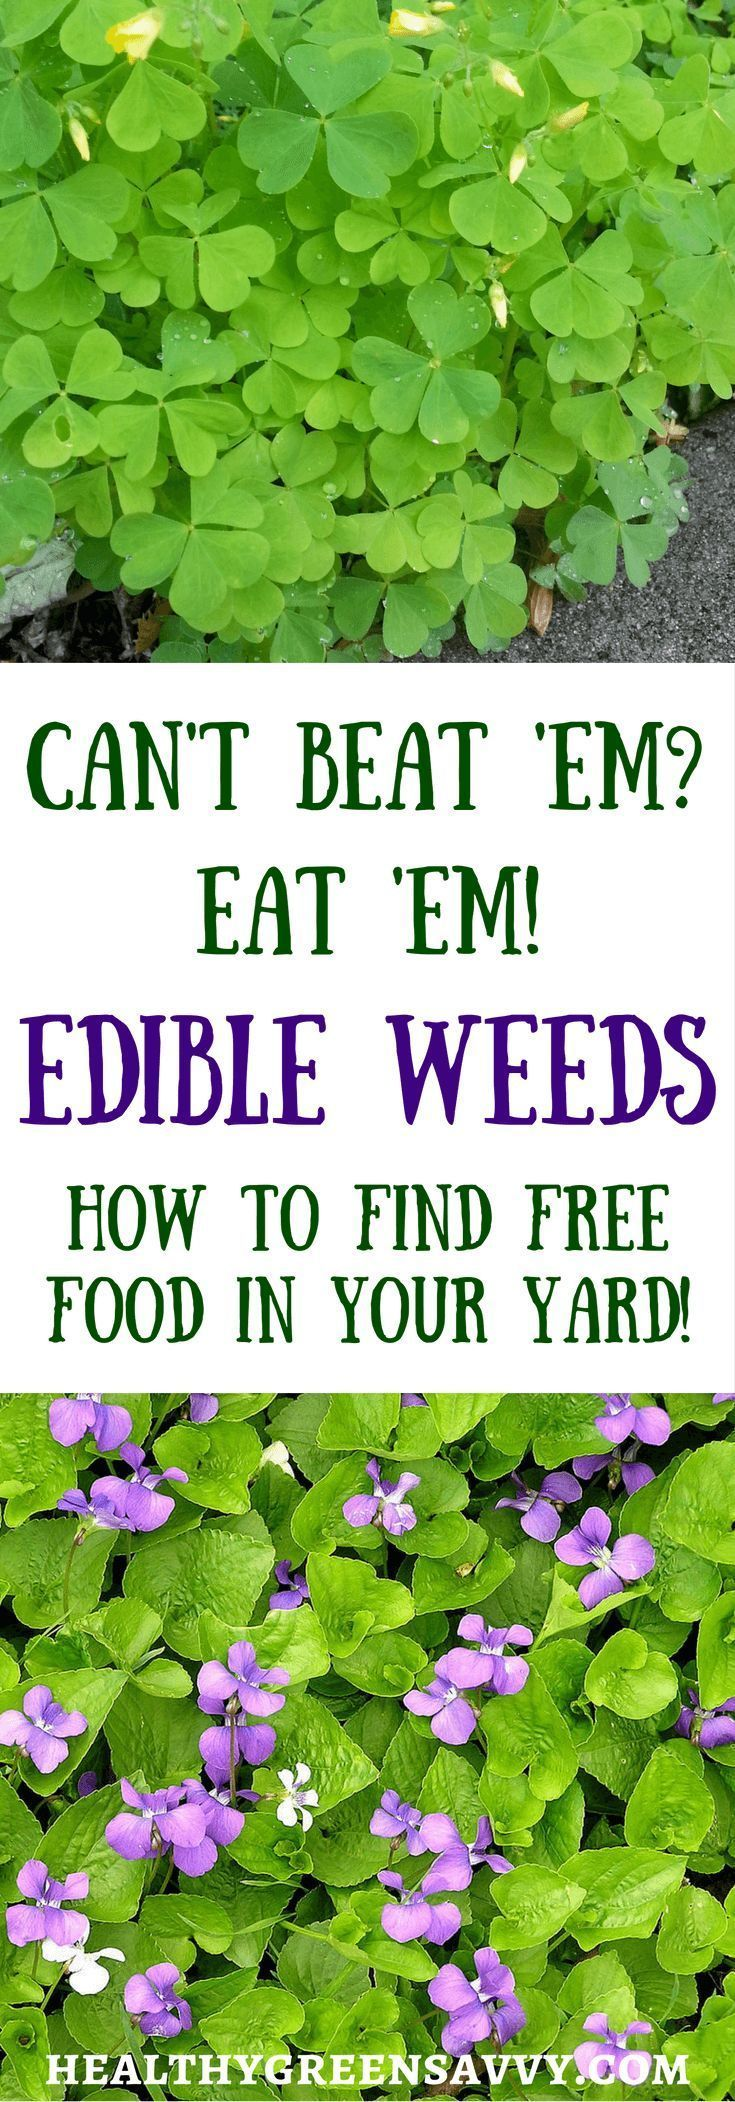 The spice doc edible and medicinal flowers - Can T Beat Em Eat Em Edible Weeds